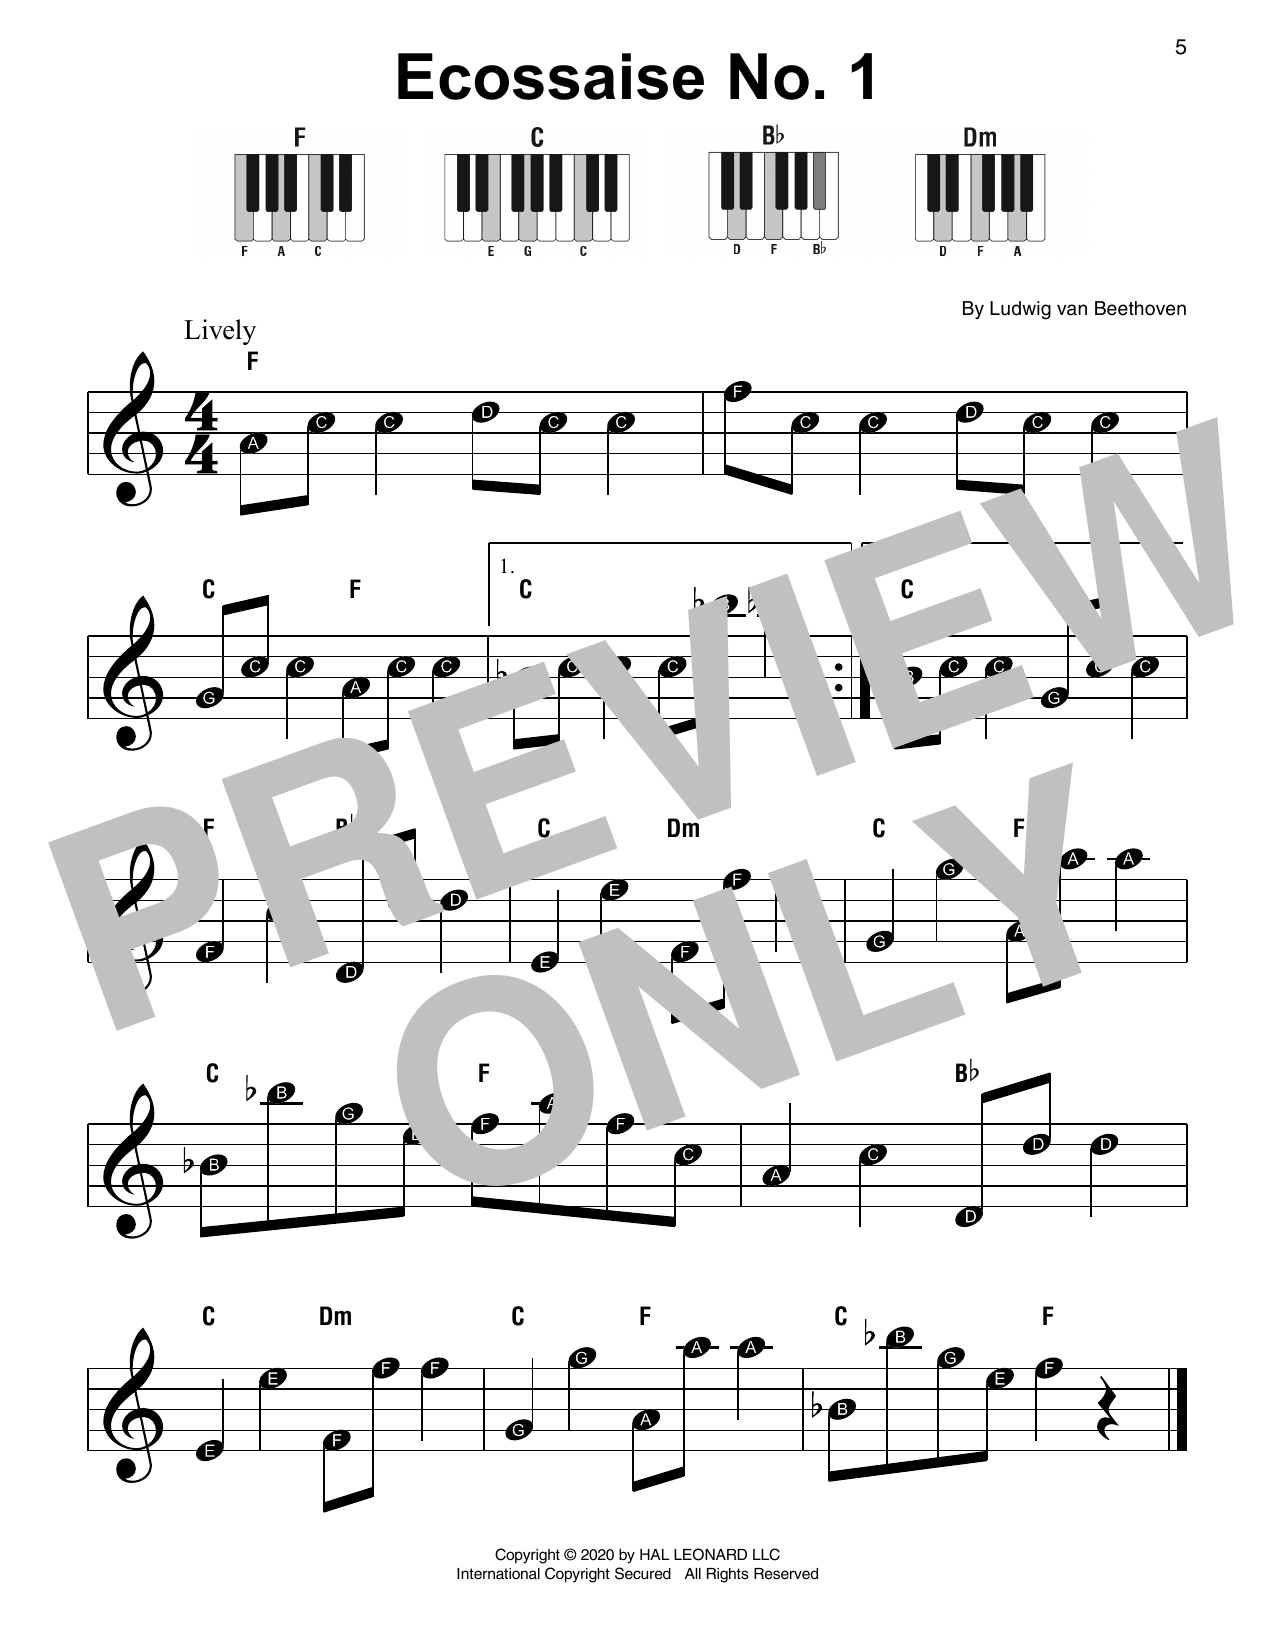 Ecossaise No. 1 Sheet Music